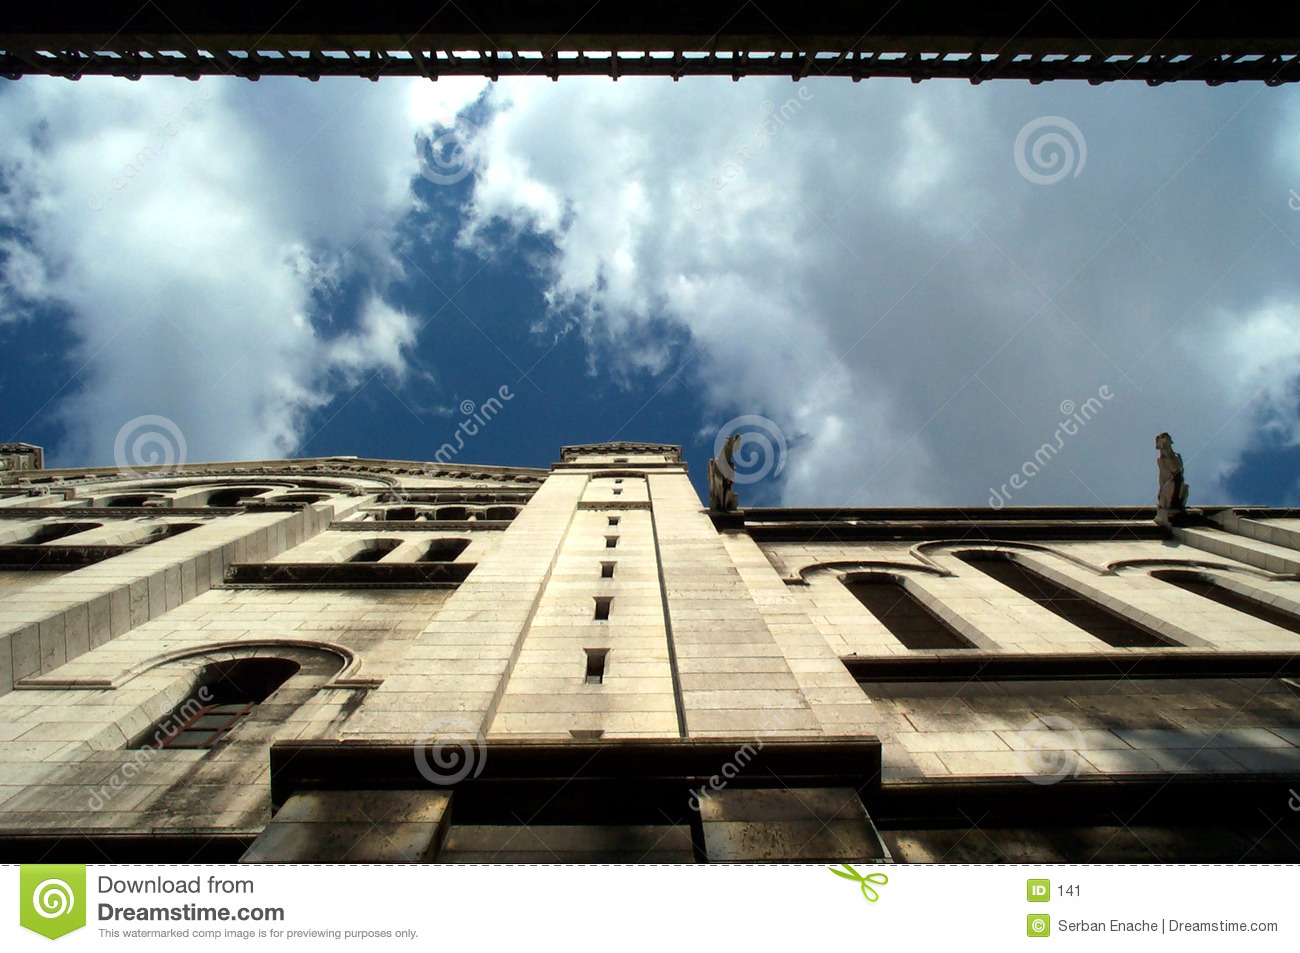 Looking up - gargoyle